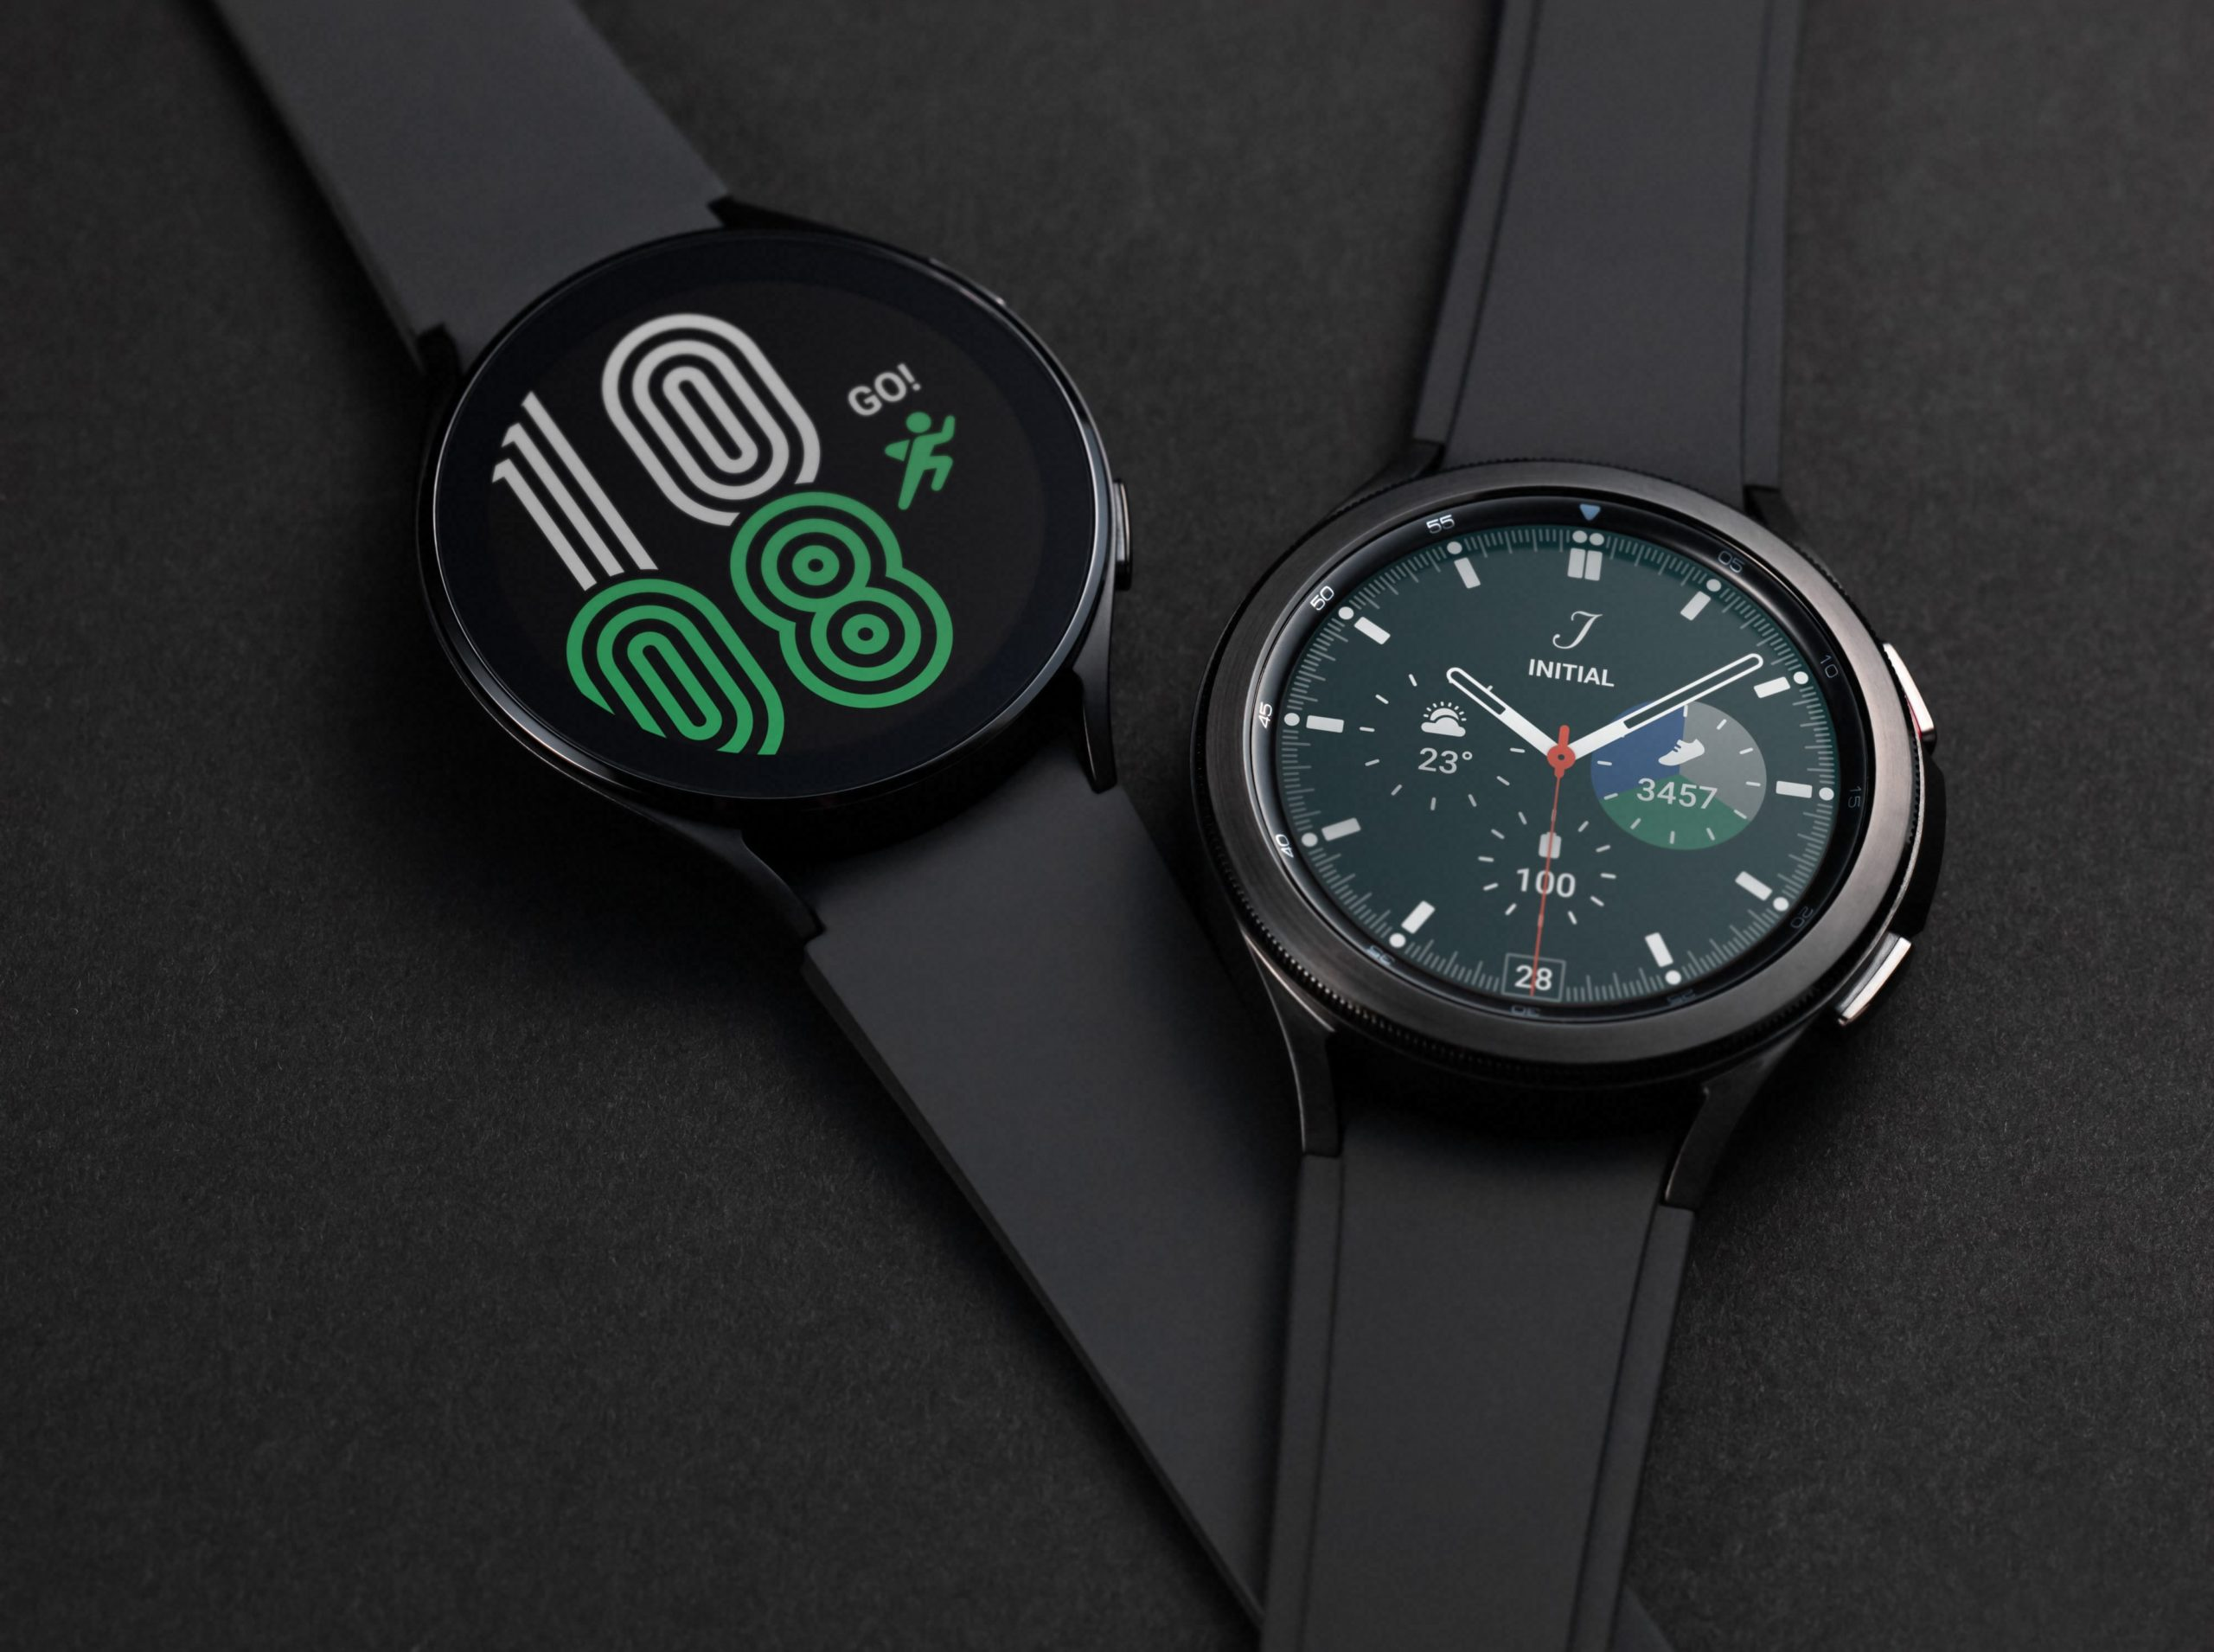 Does the Galaxy Watch 4 have eSIM?